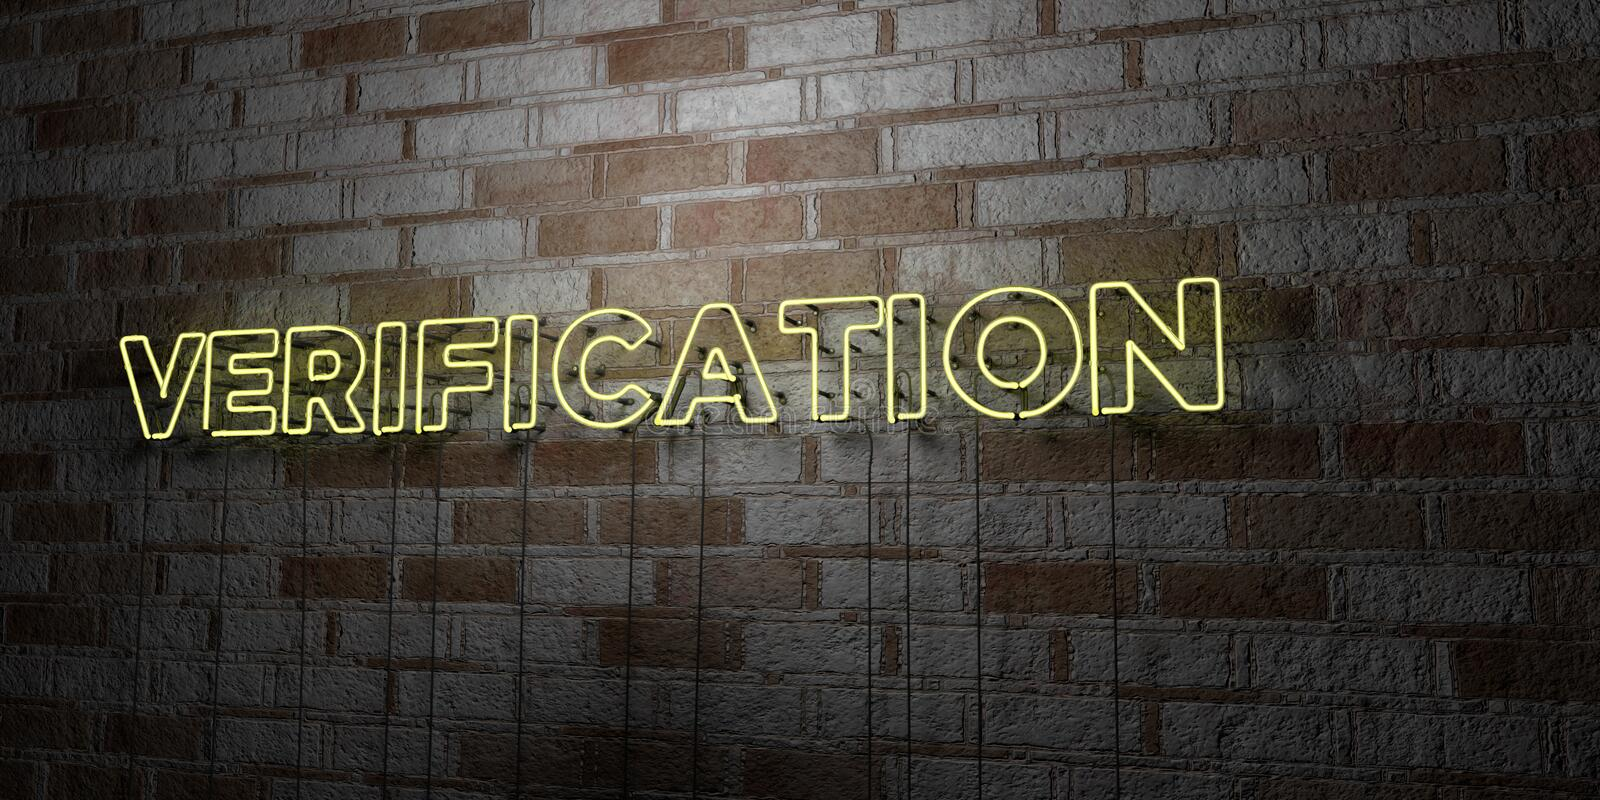 VERIFICATION - Glowing Neon Sign on stonework wall - 3D rendered royalty free stock illustration. Can be used for online banner ads and direct mailers vector illustration